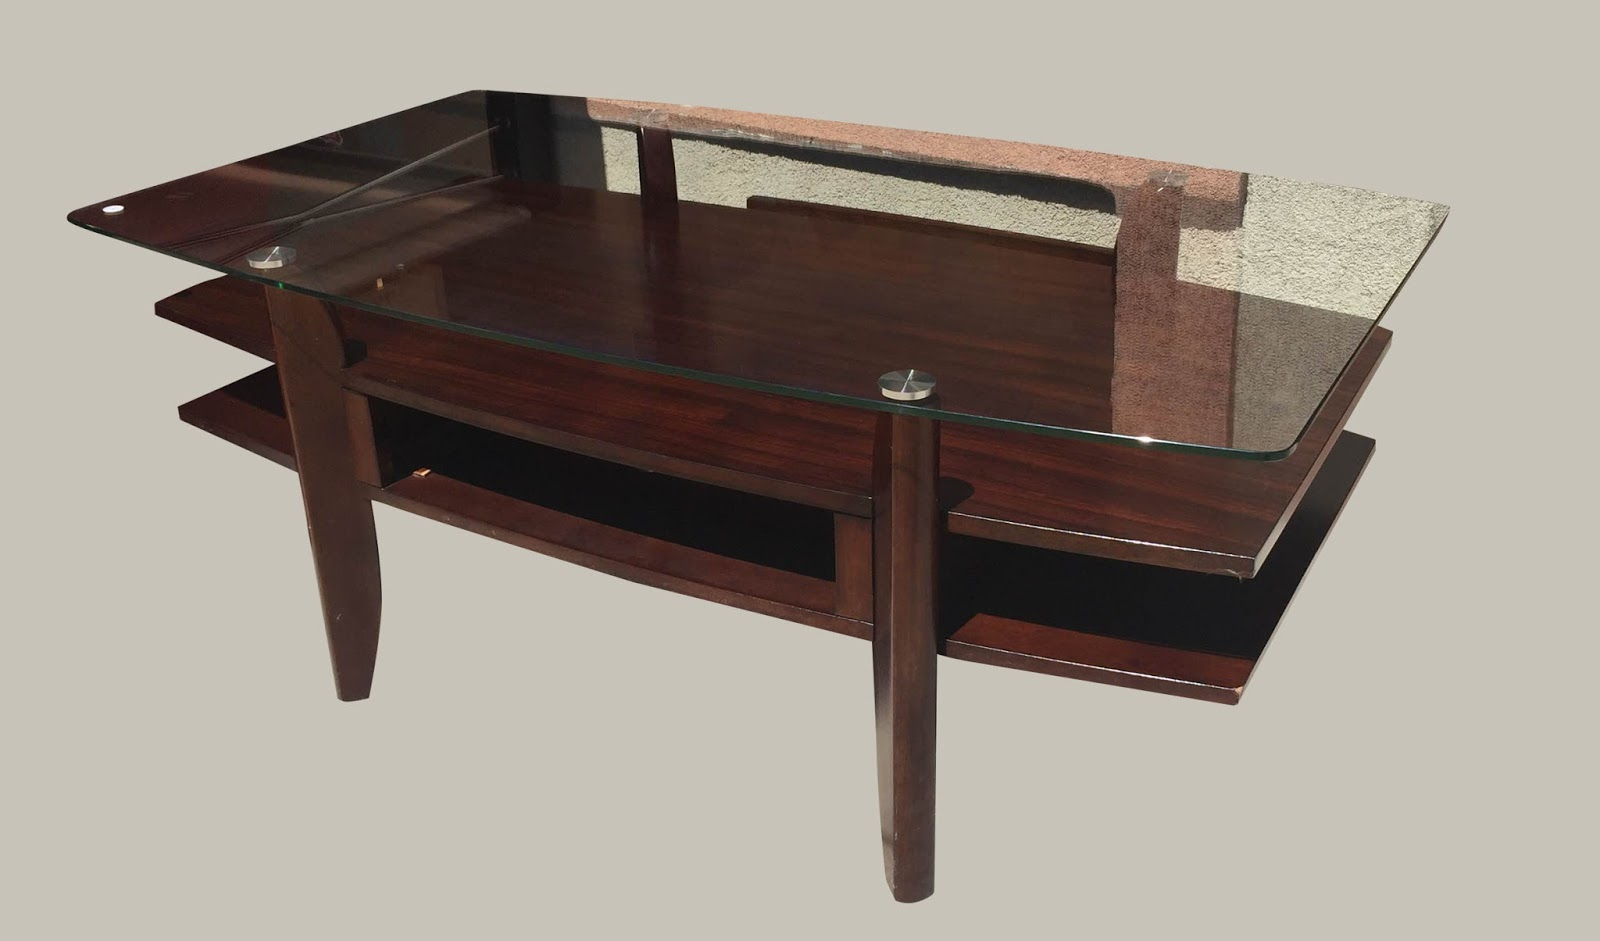 Uhuru furniture collectibles 3 level coffee table with for 3 level coffee table